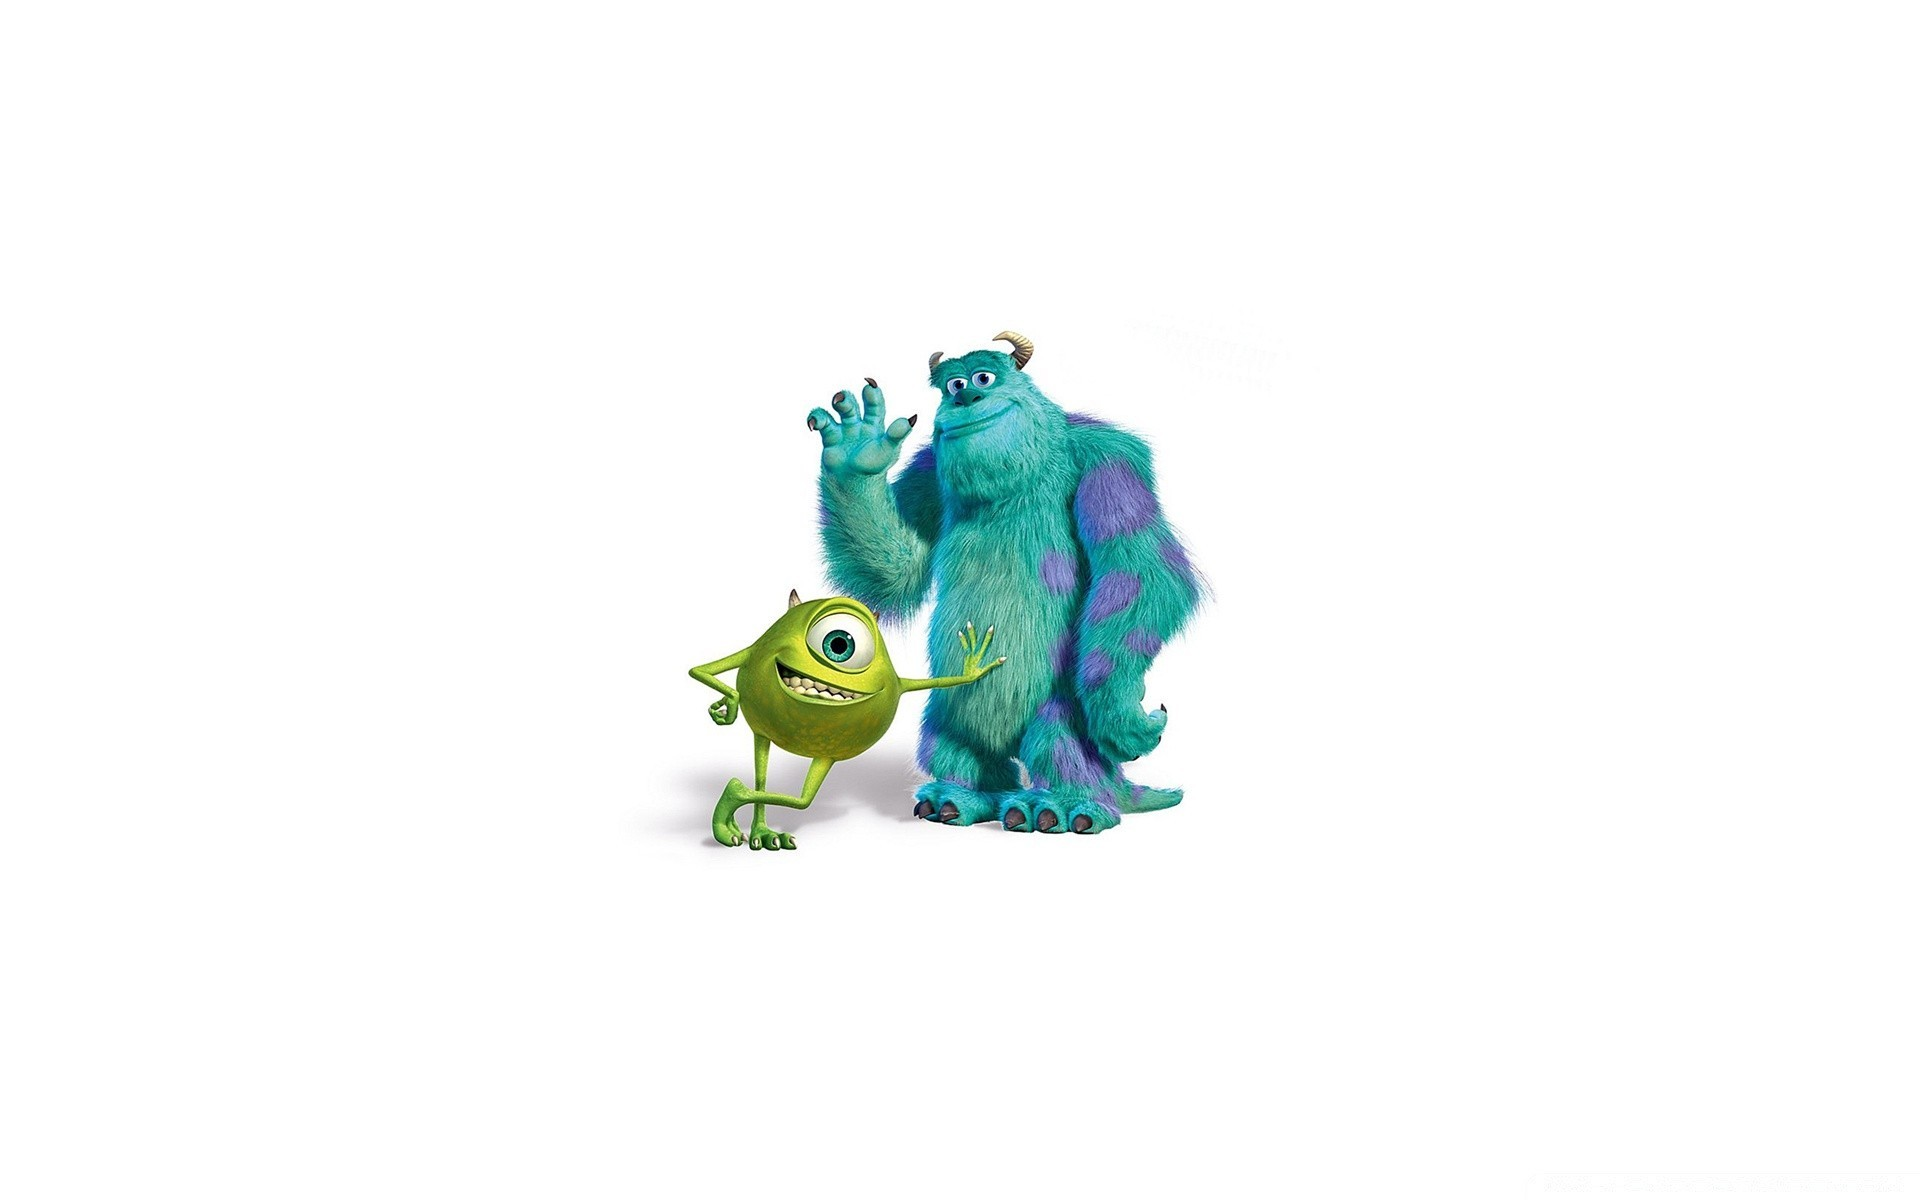 Monsters Inc Characters Randall Boggs Wall Decal main product Monsters inc characters pictures